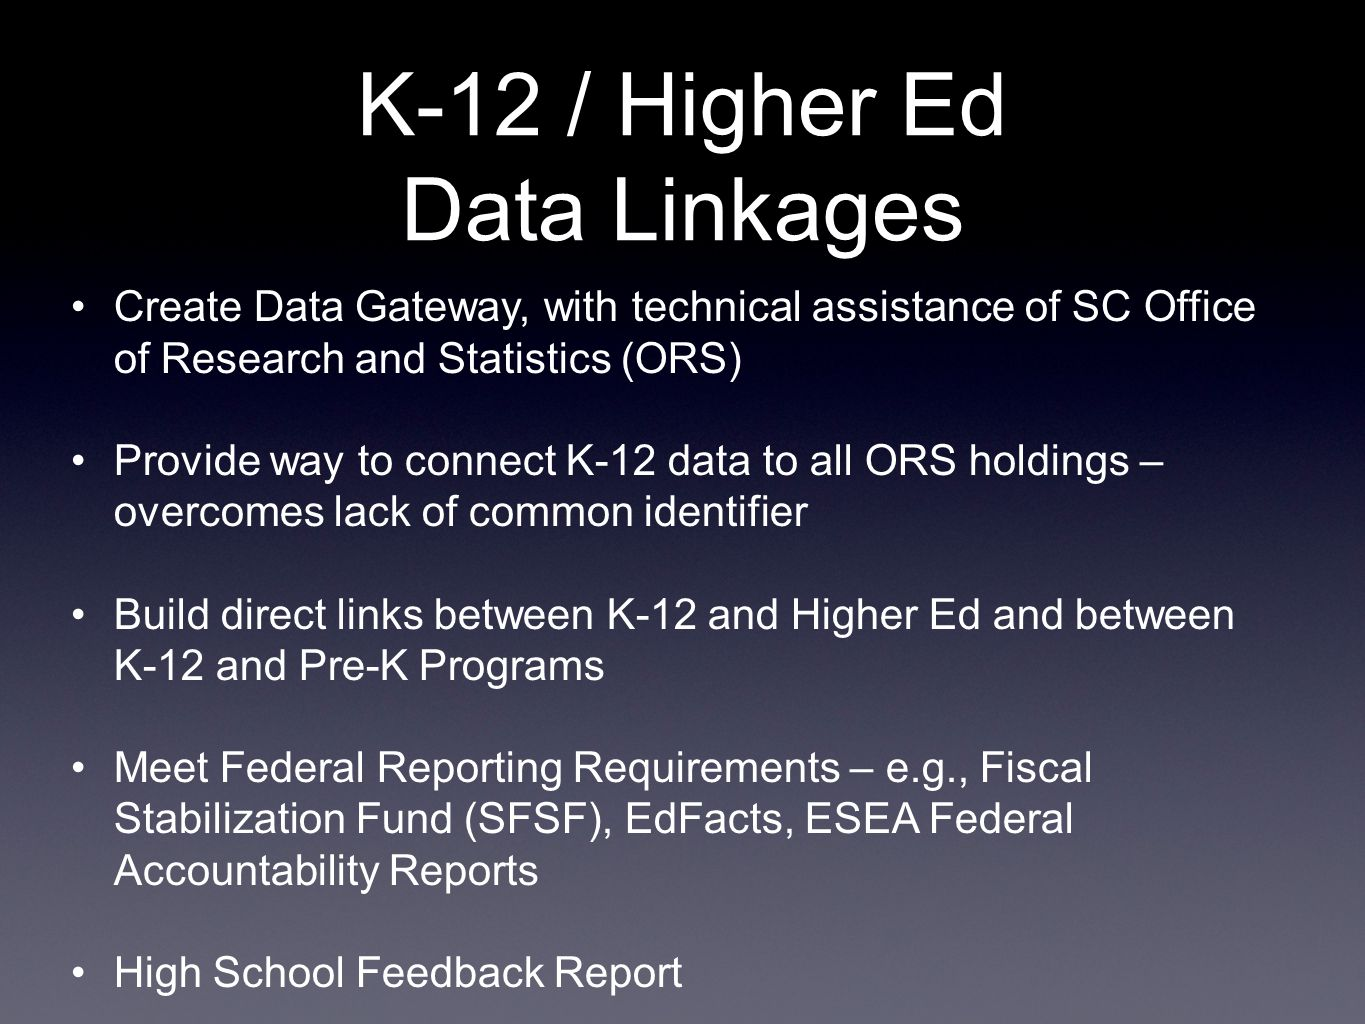 K-12 / Higher Ed Data Linkages Create Data Gateway, with technical assistance of SC Office of Research and Statistics (ORS) Provide way to connect K-12 data to all ORS holdings – overcomes lack of common identifier Build direct links between K-12 and Higher Ed and between K-12 and Pre-K Programs Meet Federal Reporting Requirements – e.g., Fiscal Stabilization Fund (SFSF), EdFacts, ESEA Federal Accountability Reports High School Feedback Report